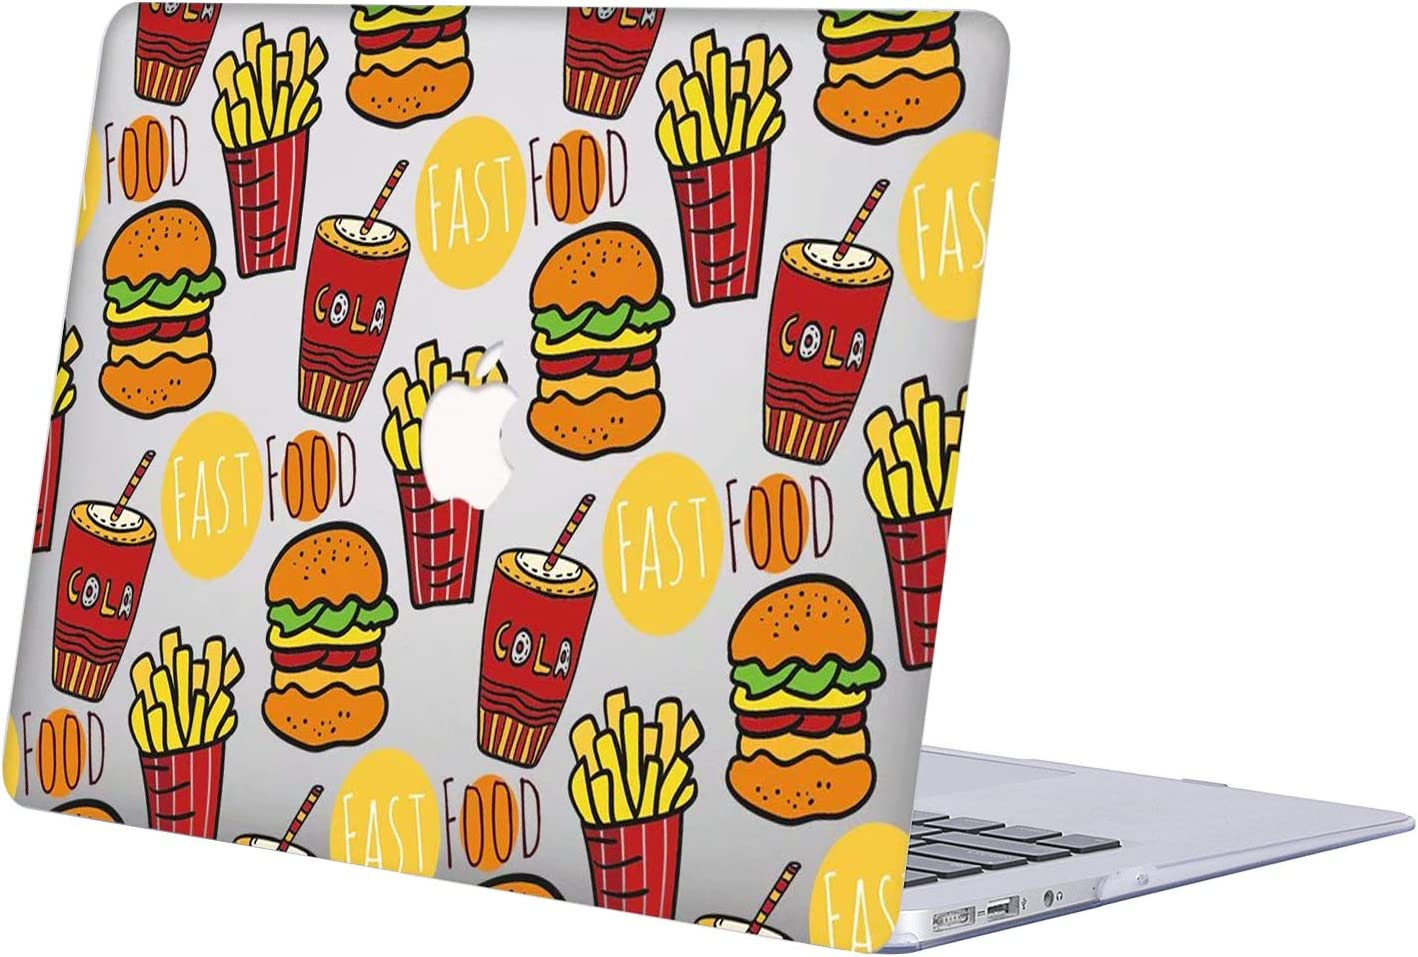 Case Compatible with MacBook Pro 15 inch 2019 2018 2017 2016 Release A1990 A1707, AJYX Hard Plastic Case Shell Cover for Newest MacBook Pro 15 case with Touch Bar Soft Touch,R809 Fast Food